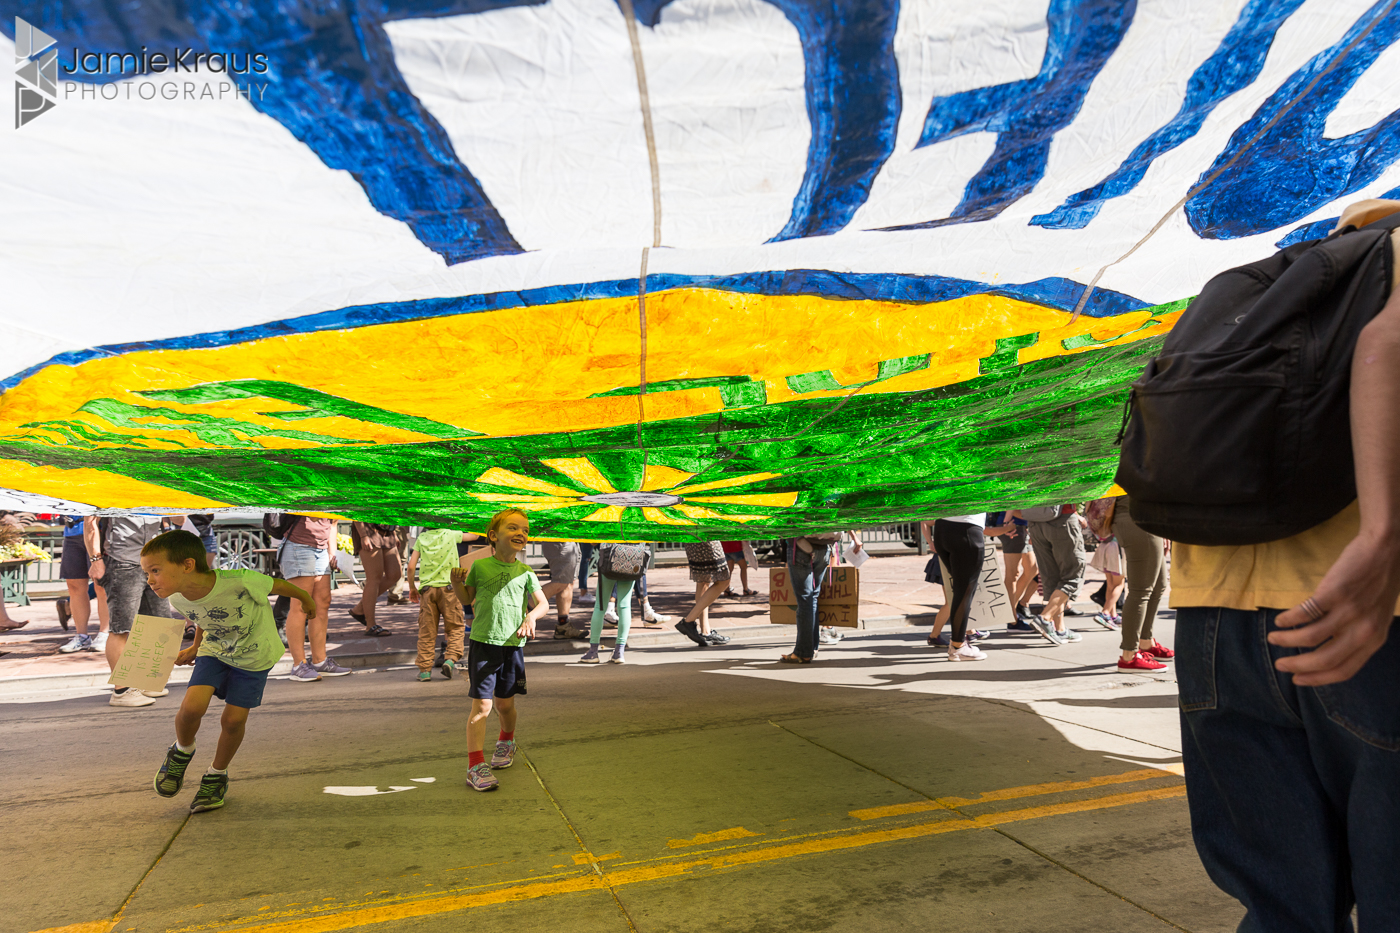 children play under climate protest parachute in Denver